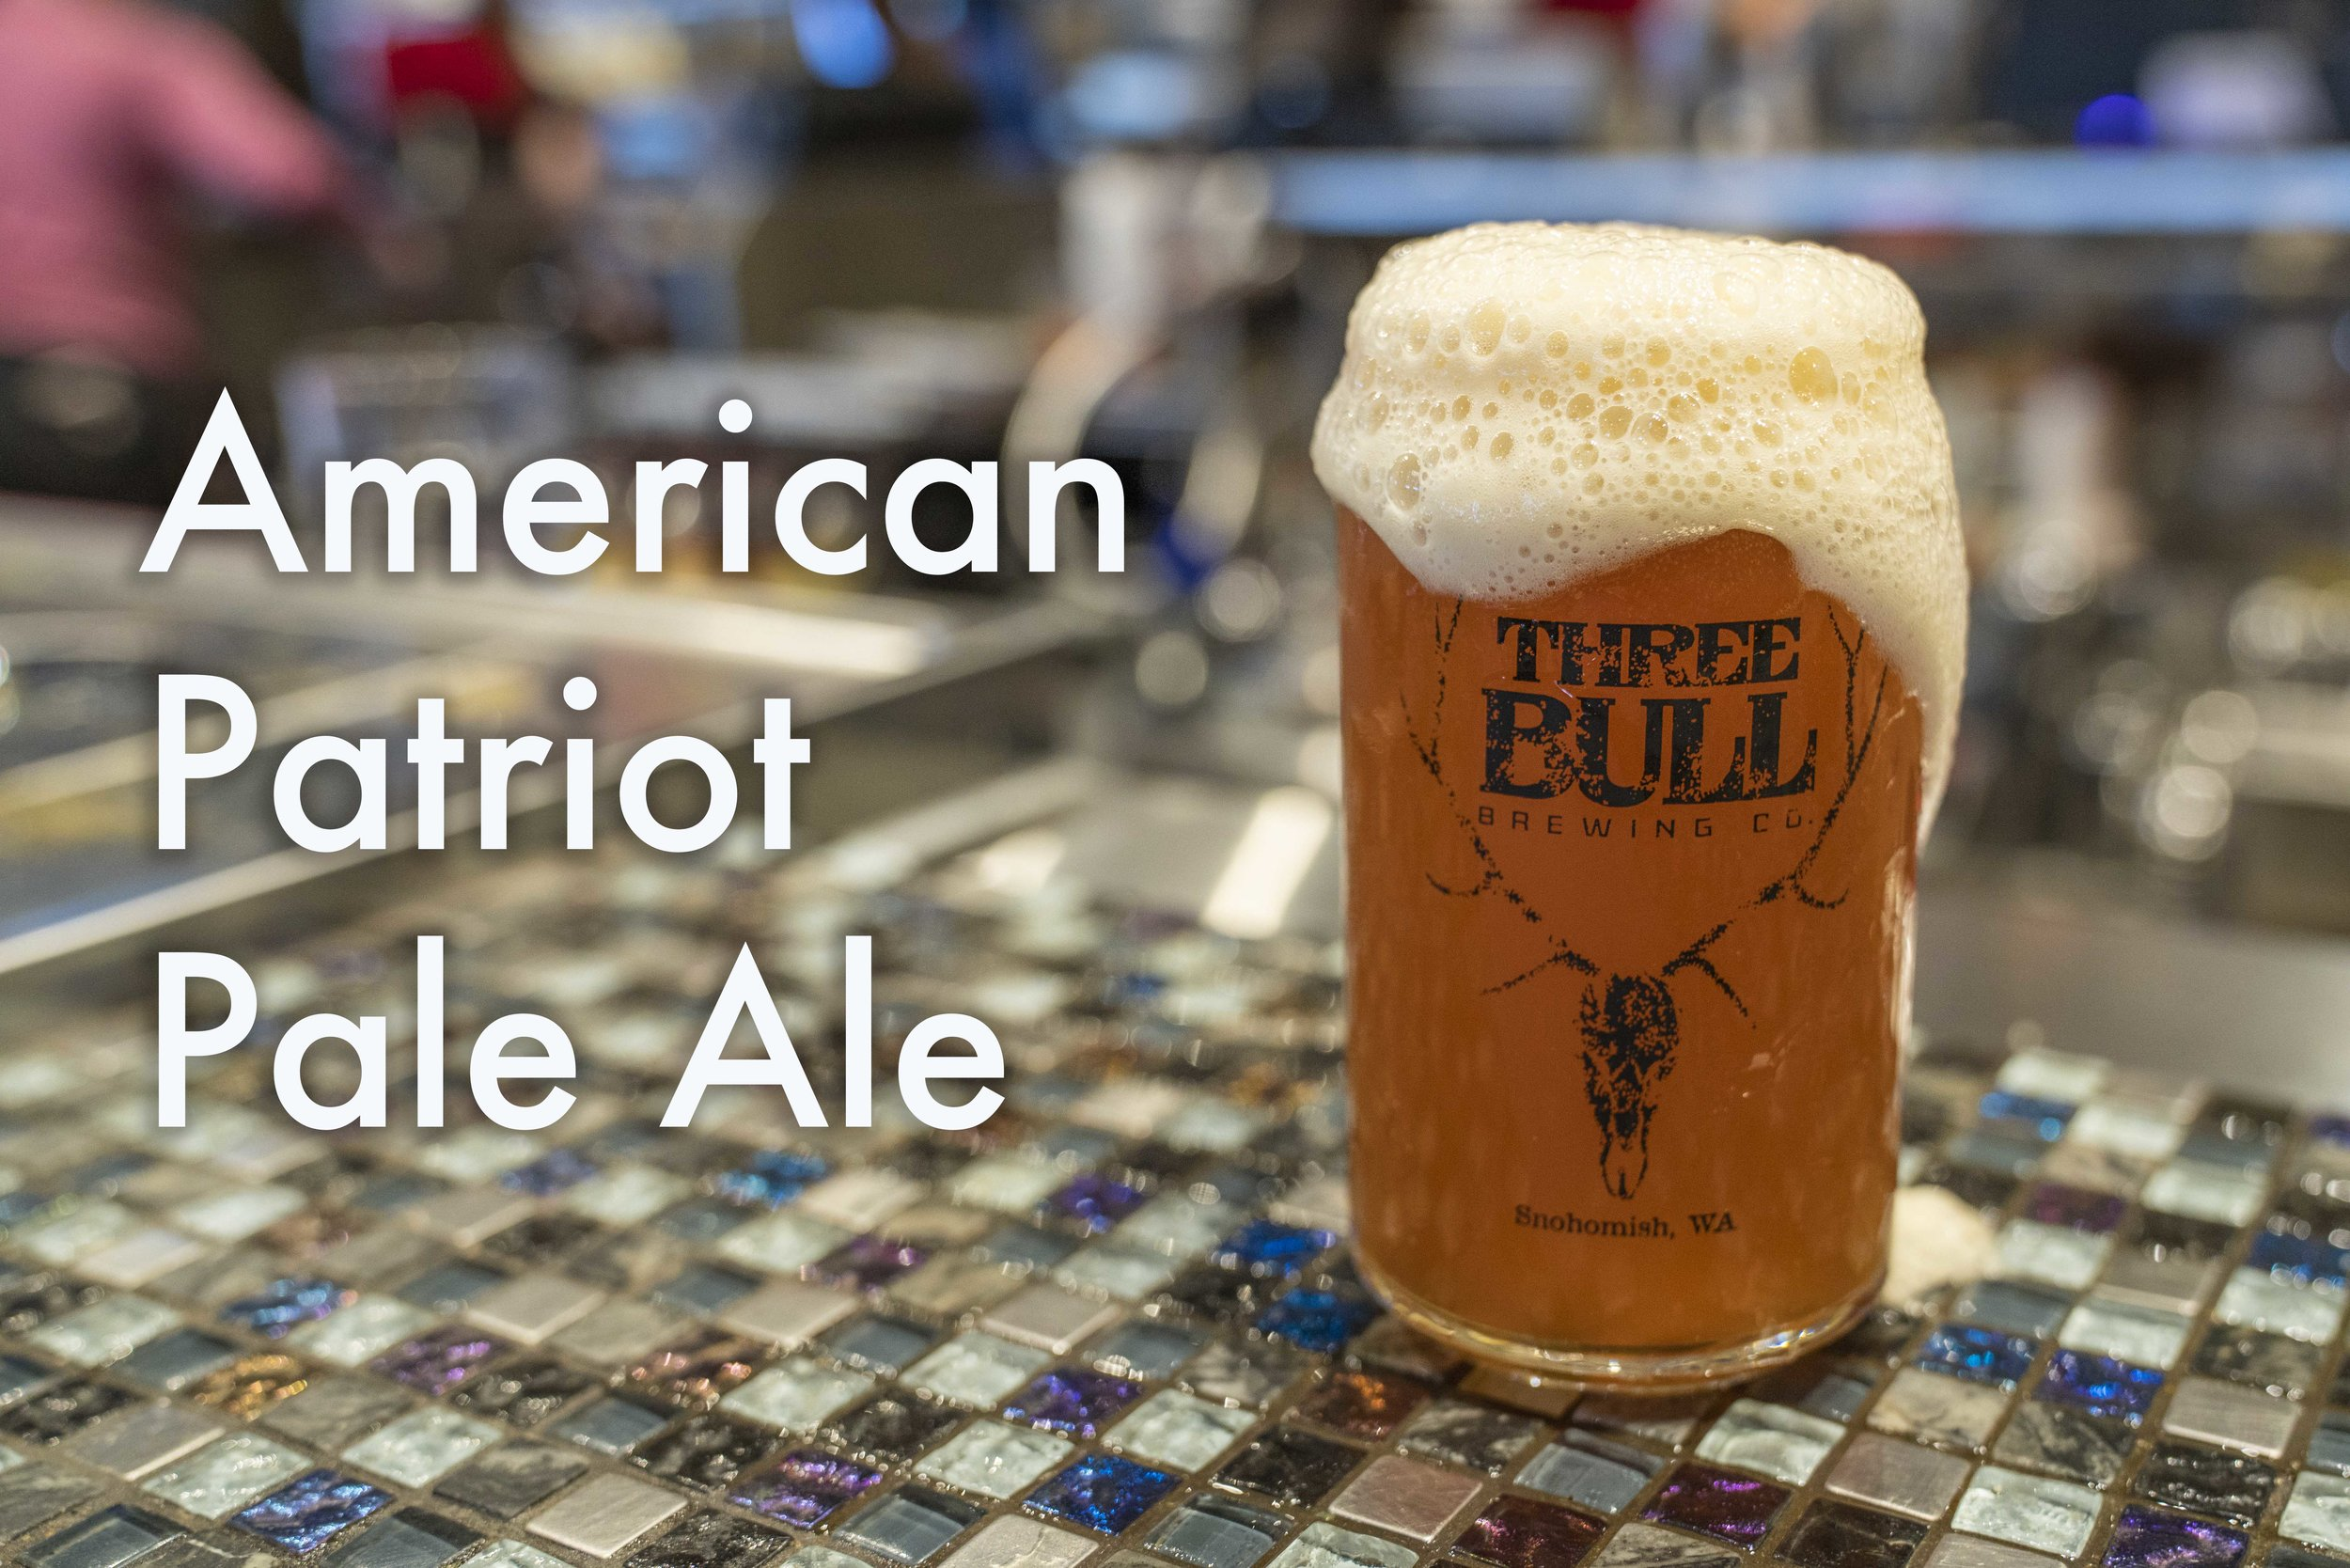 American Patriot Pale Ale Web 1.jpg